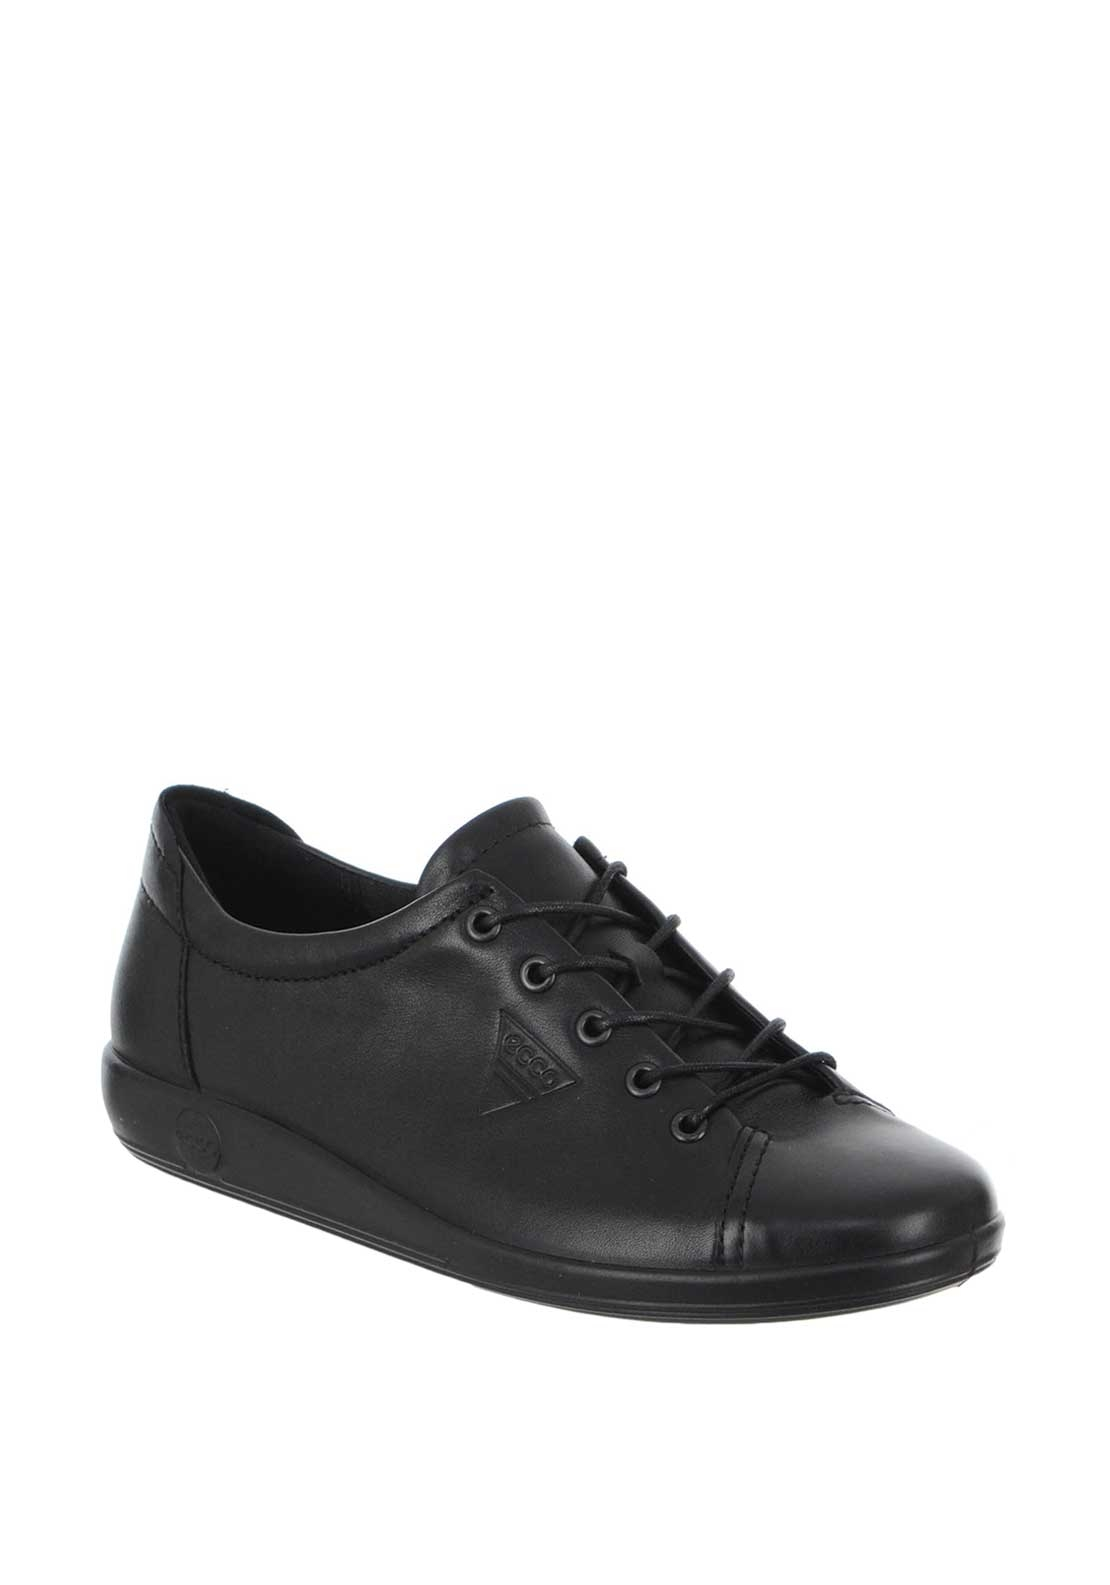 Ecco Women's Patent Leather Comfort Shoe Soft, Black